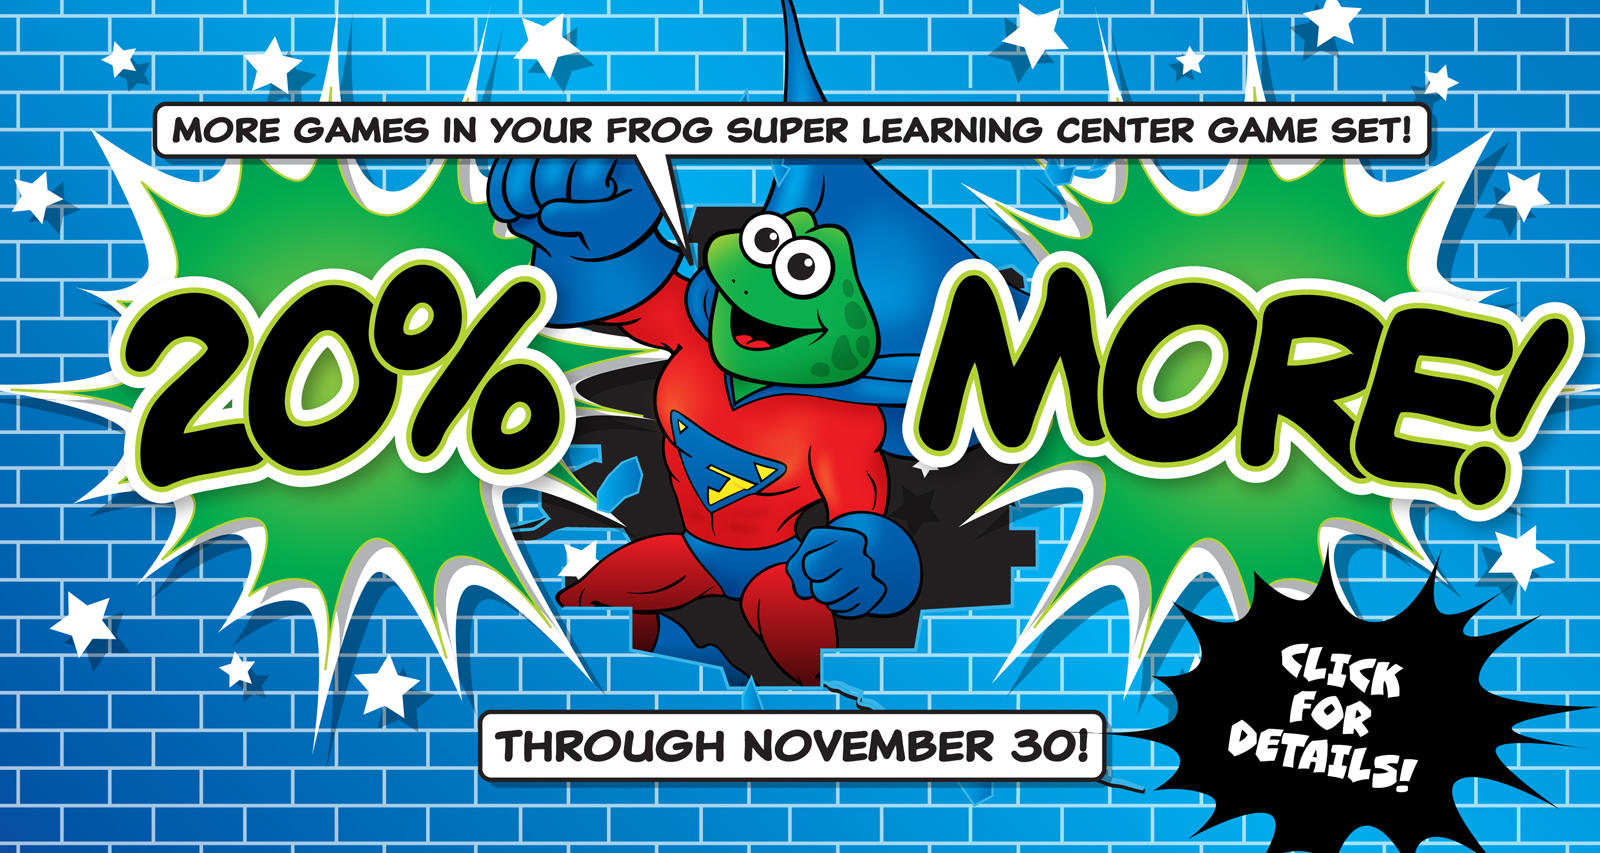 Get 20% more games in your Frog Super Learning Center Game Set!